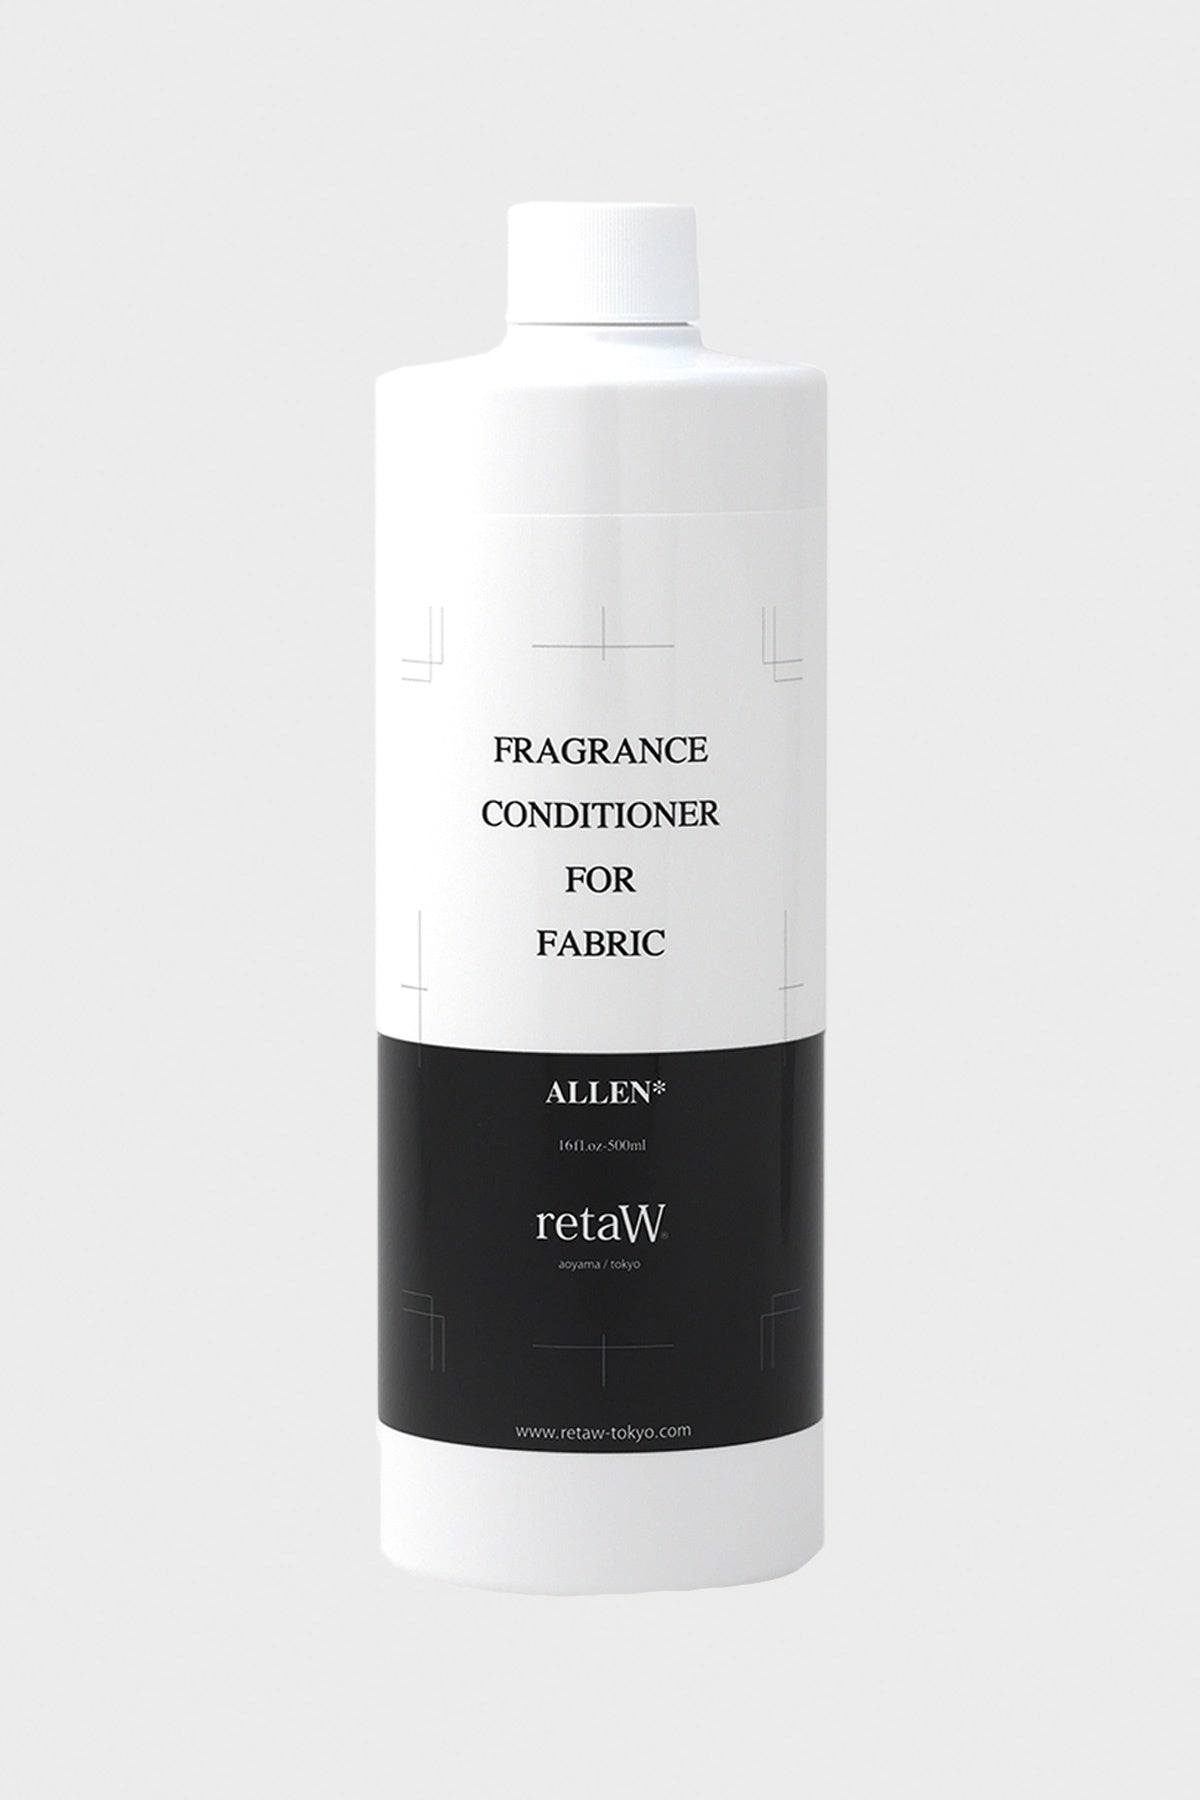 retaW - Fragrance Fabric Conditioner - Allen - Canoe Club